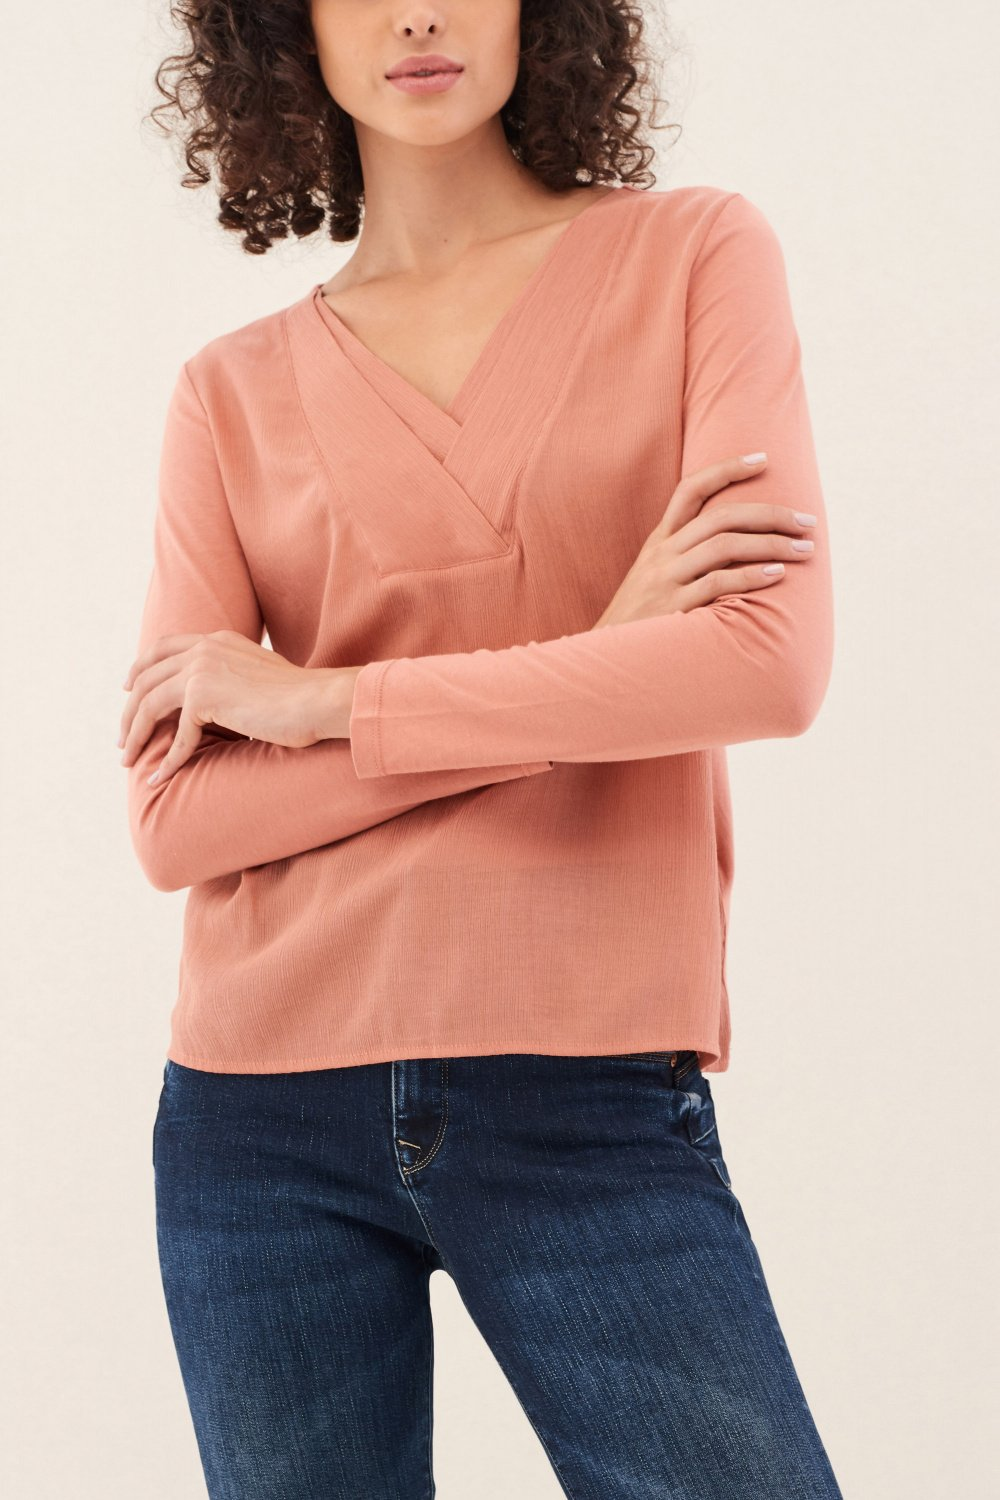 Sweatshirt with fabric detail on front - Salsa